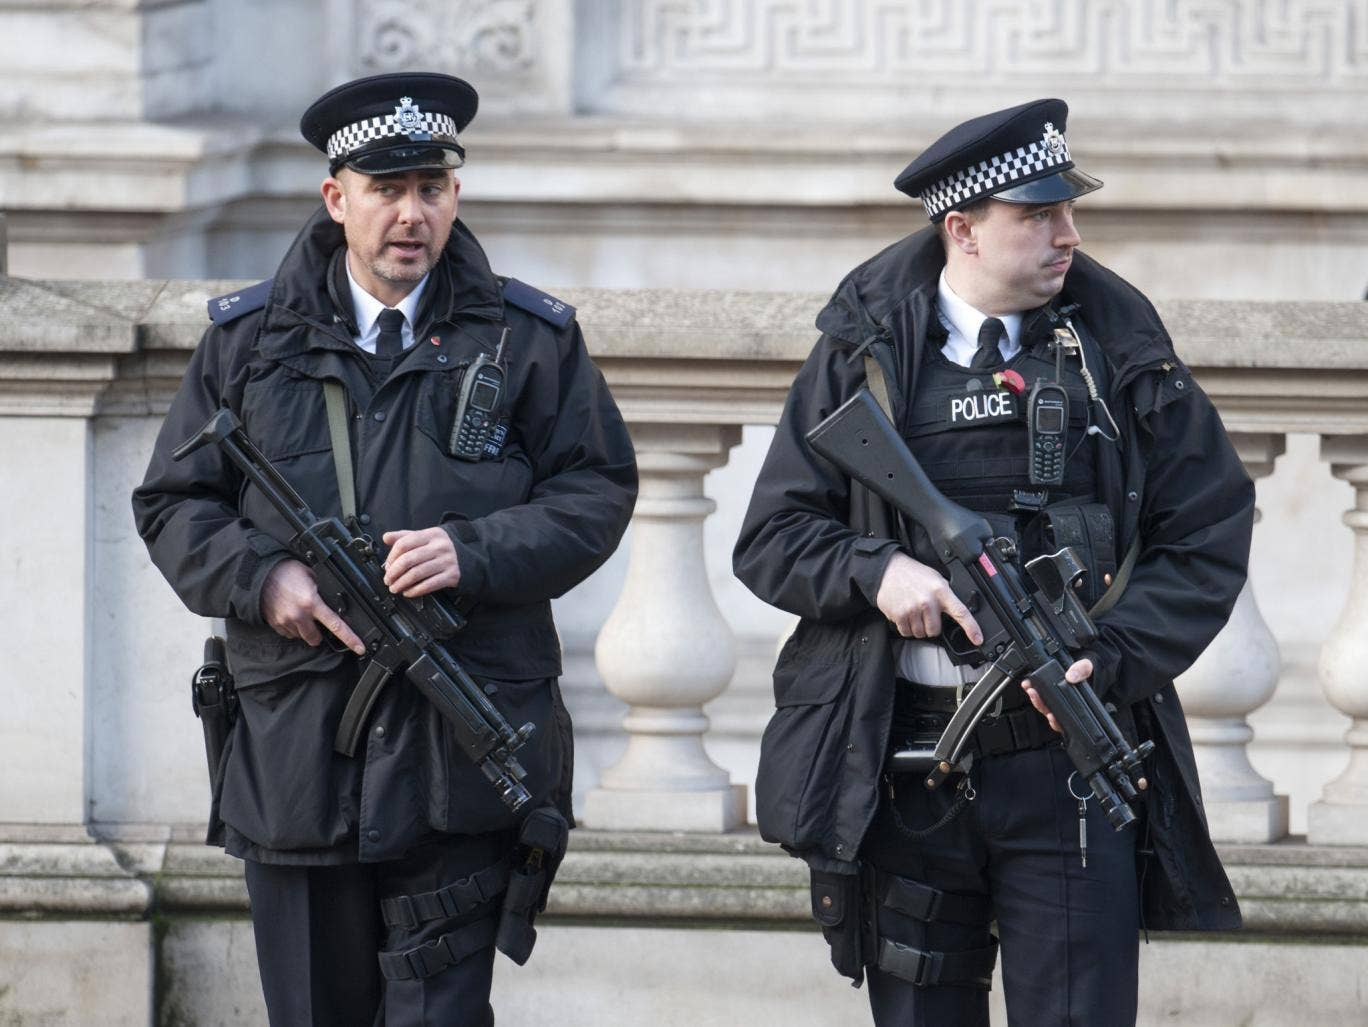 Armed Police In England And Wales Only Fired Their Weapons